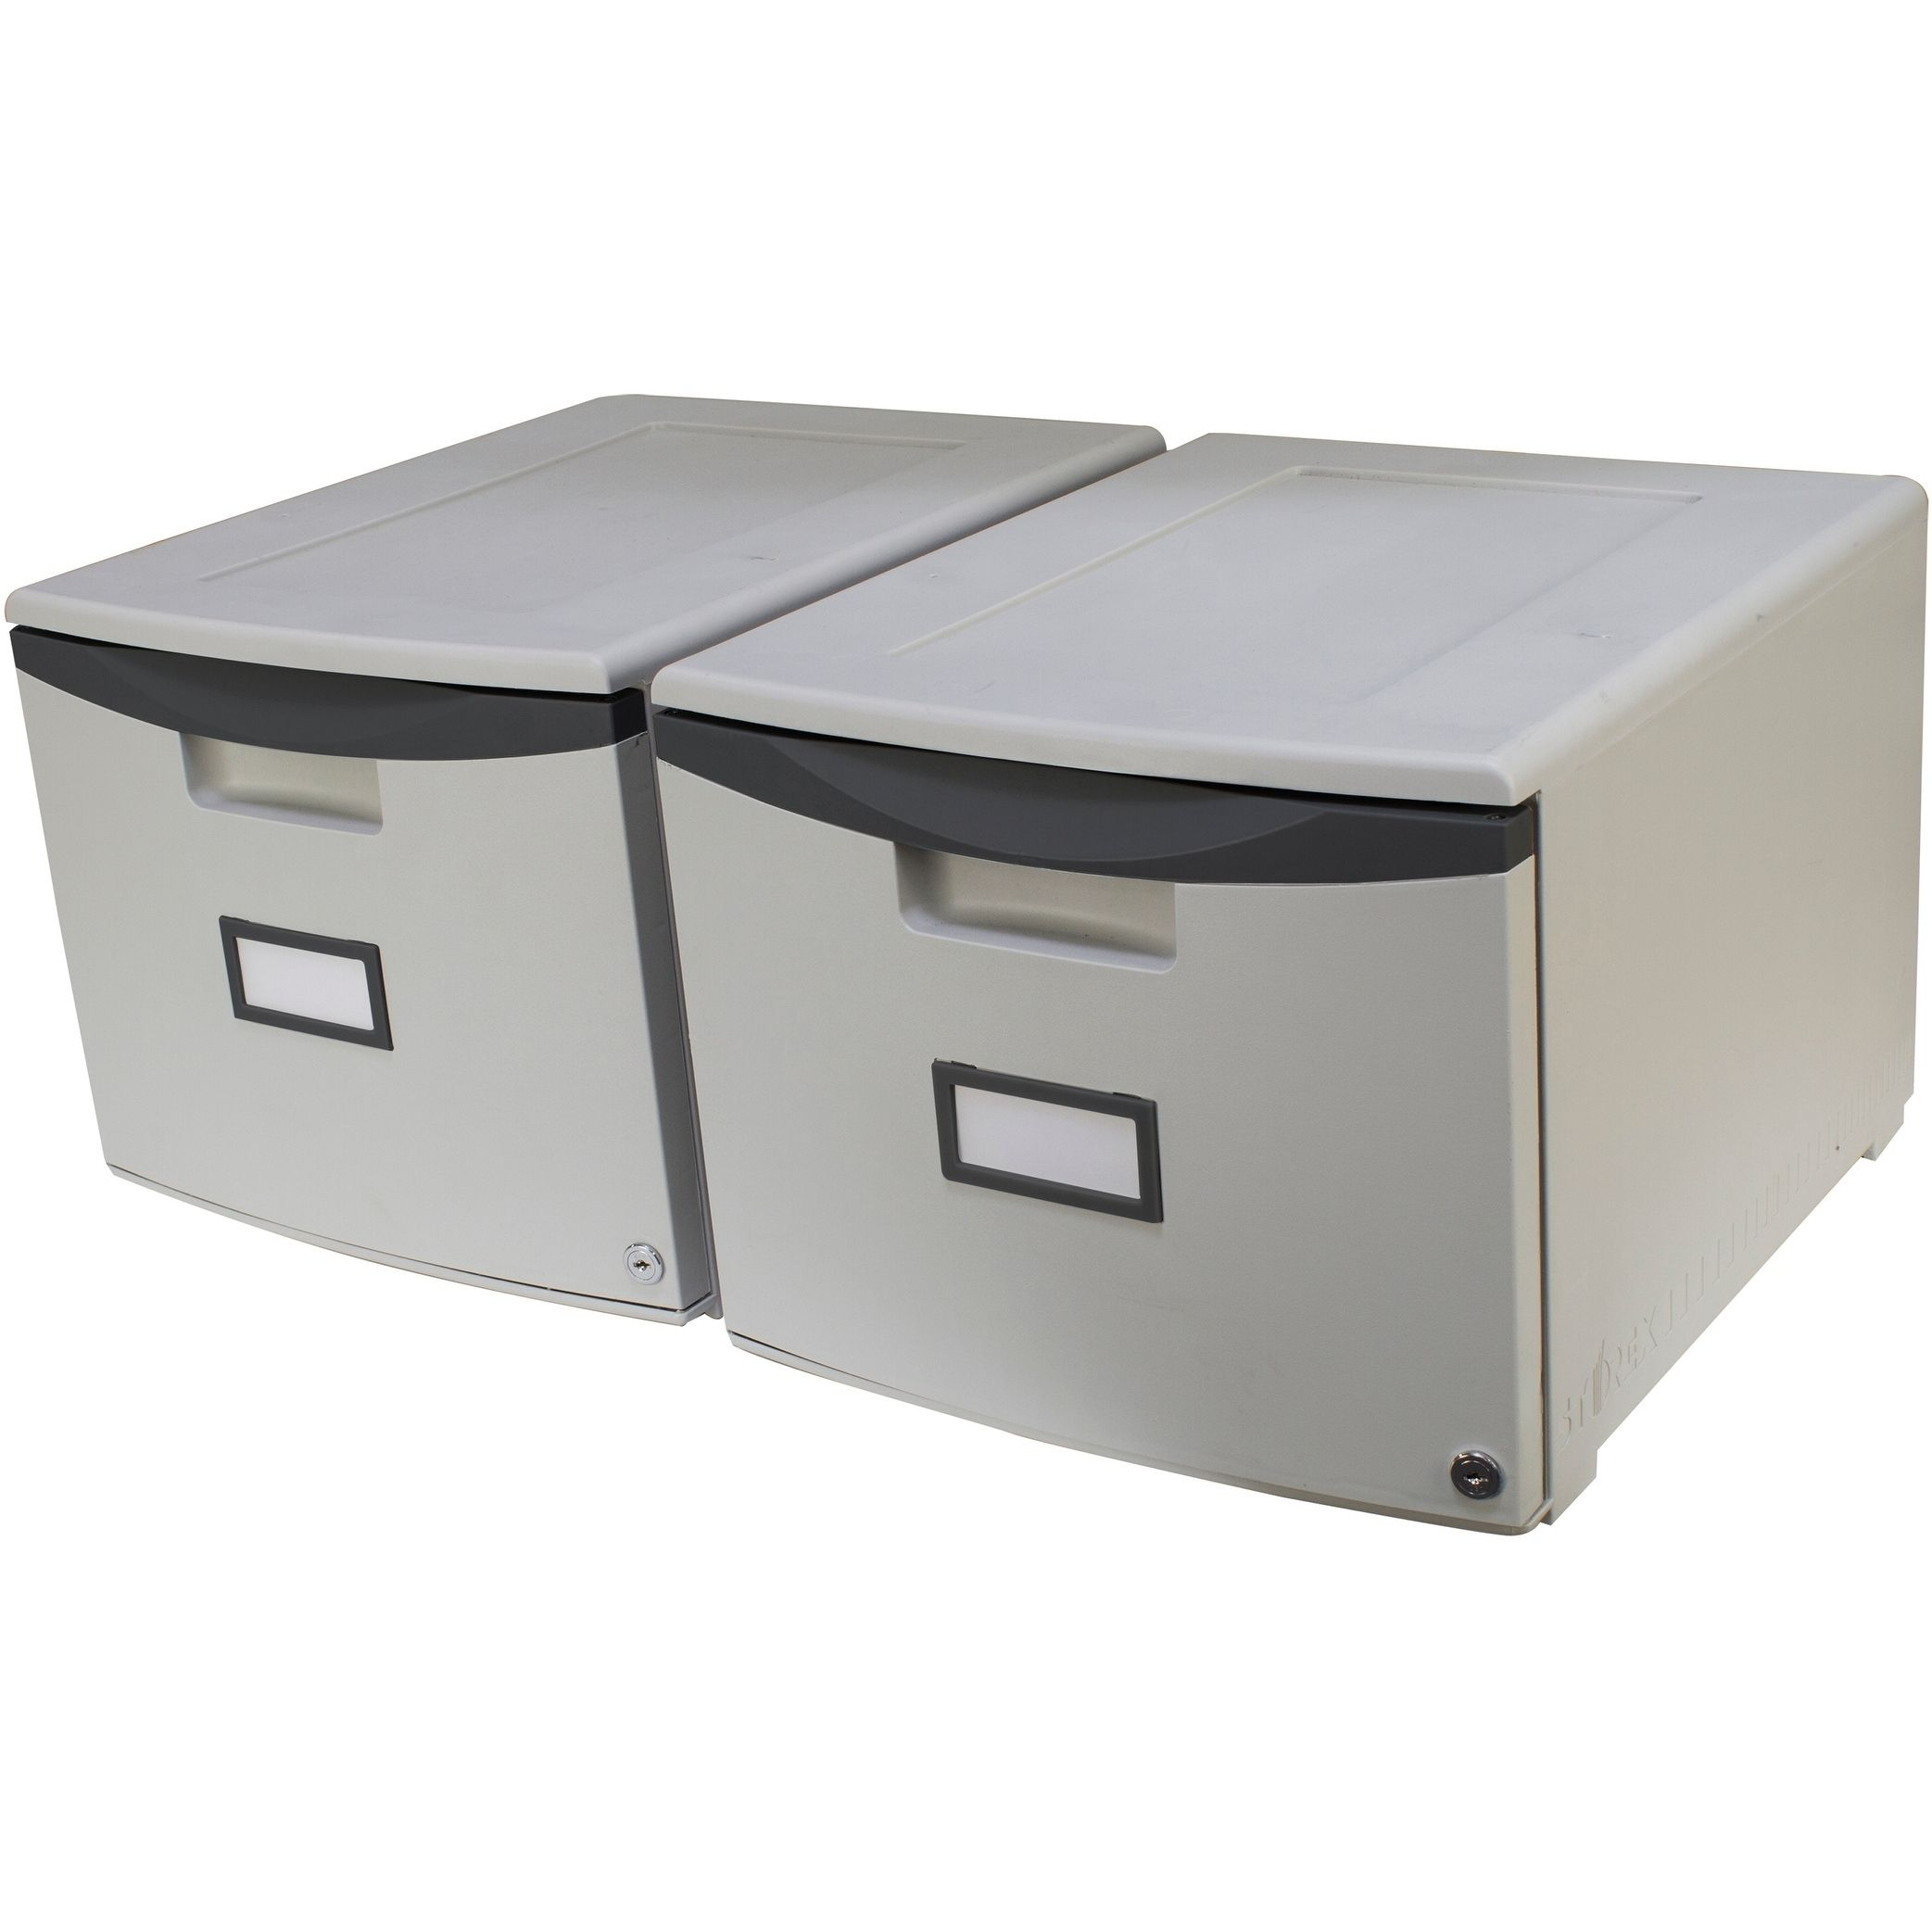 on system plastic dark file cabinets cabinet single marvellos wheels drawer astounding rolling